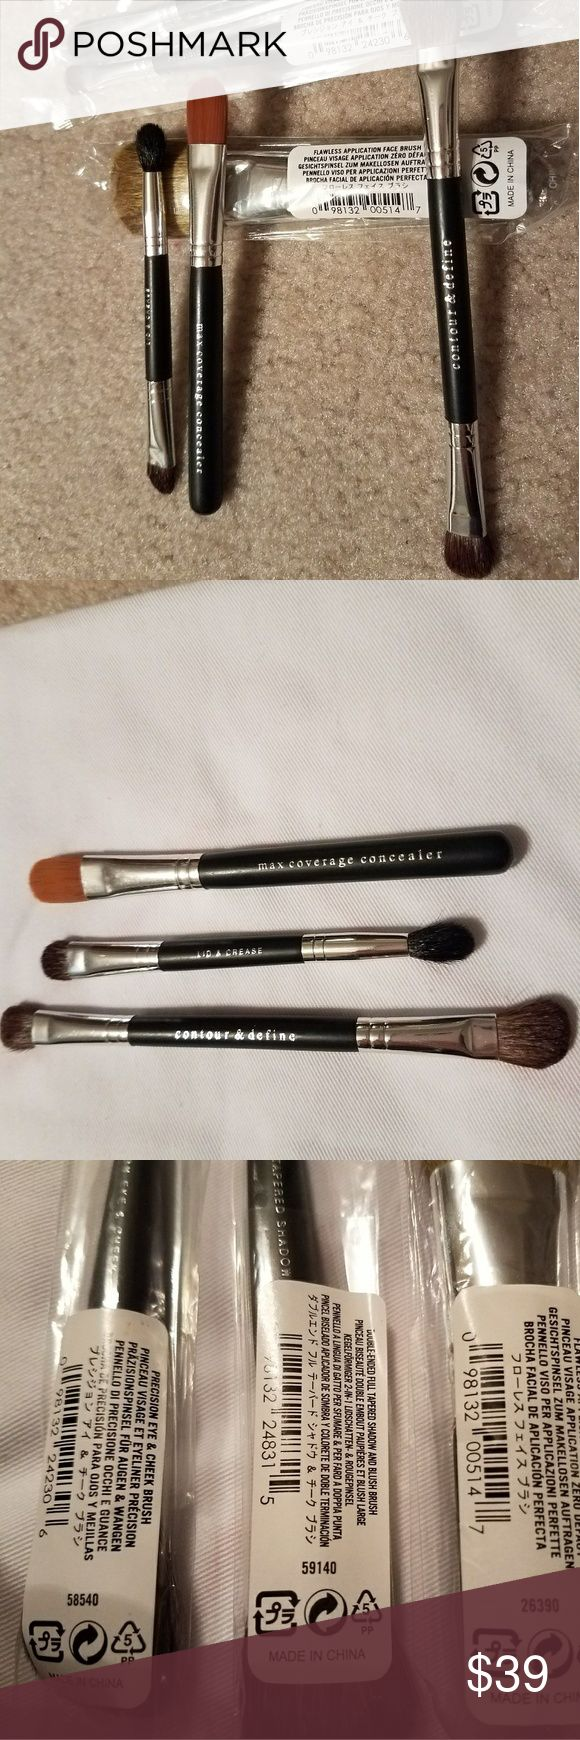 Bare Minerals Brushes (6) Six brand new brushes, 3 in original packaging 3 without, however never been used. You will receive 1 of each of the following brushes. 1. Flawless Application Face Brush 2. Double ended full tapered shadow and blush brush 3. Precision eye and cheek brush  4. Contour and define brush  5. Lid and crease brush  6. Max coverage concealer  Open to reasonable offers bareMinerals Makeup Brushes & Tools